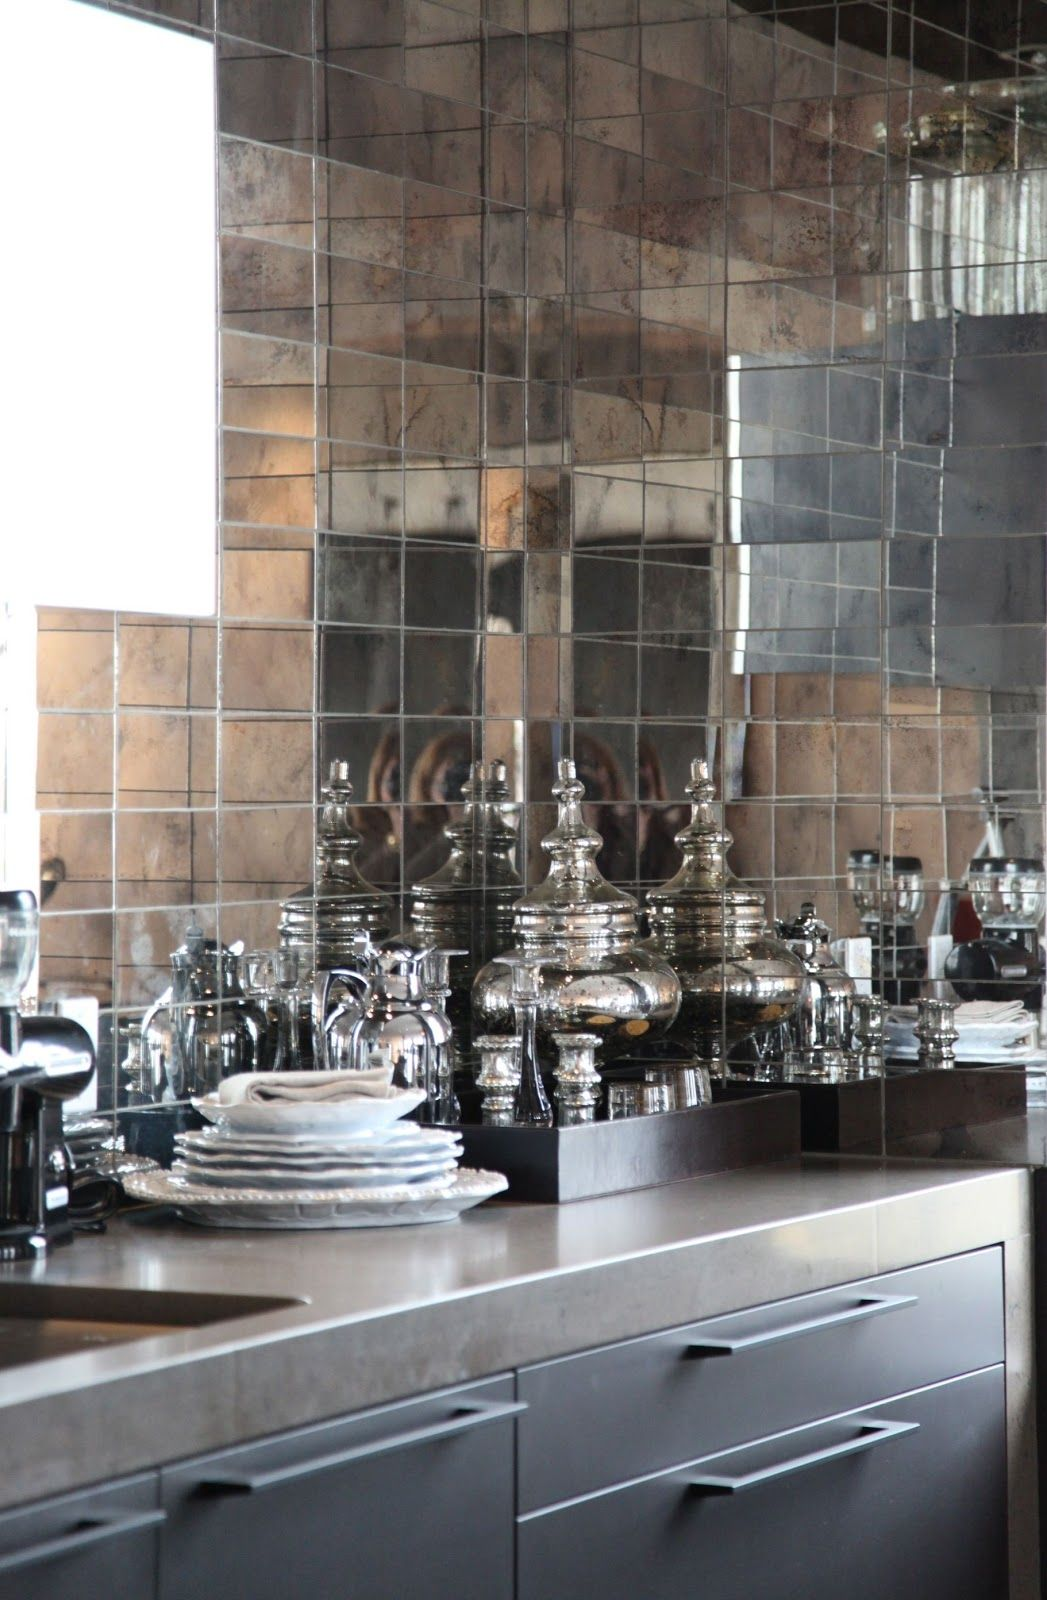 Ann Sacks Mirrored Backsplash For A Wet Bar